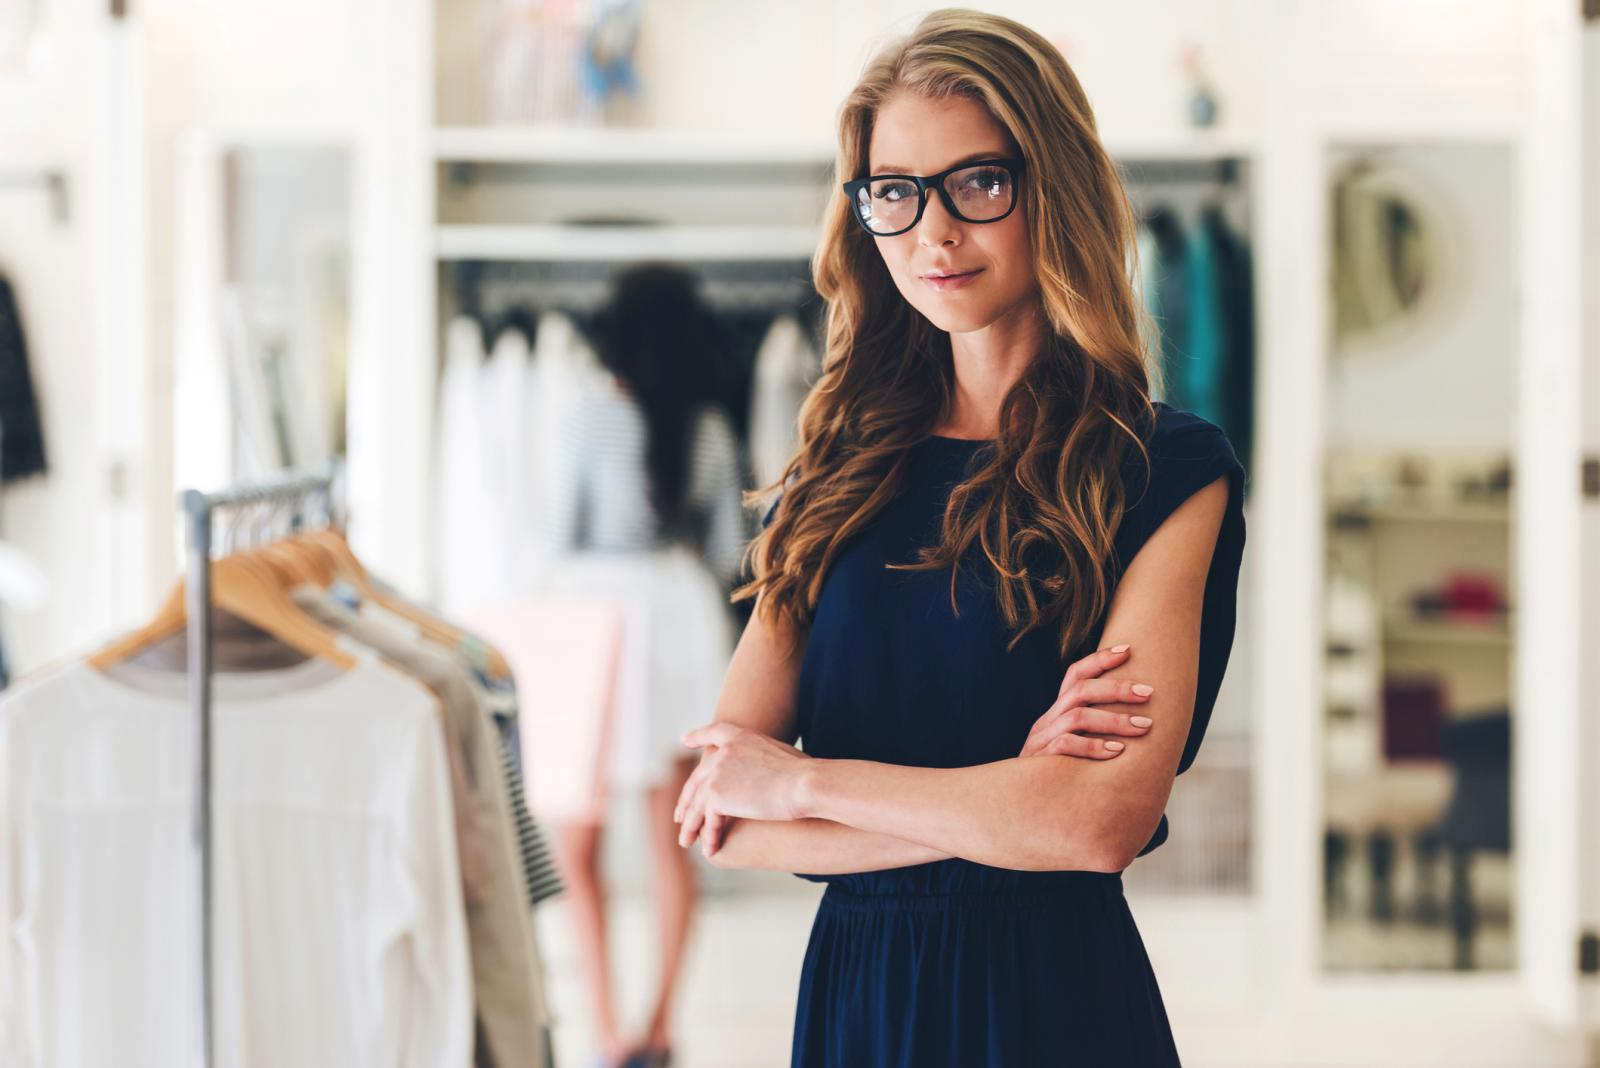 Woman in glasses standing at the clothing store